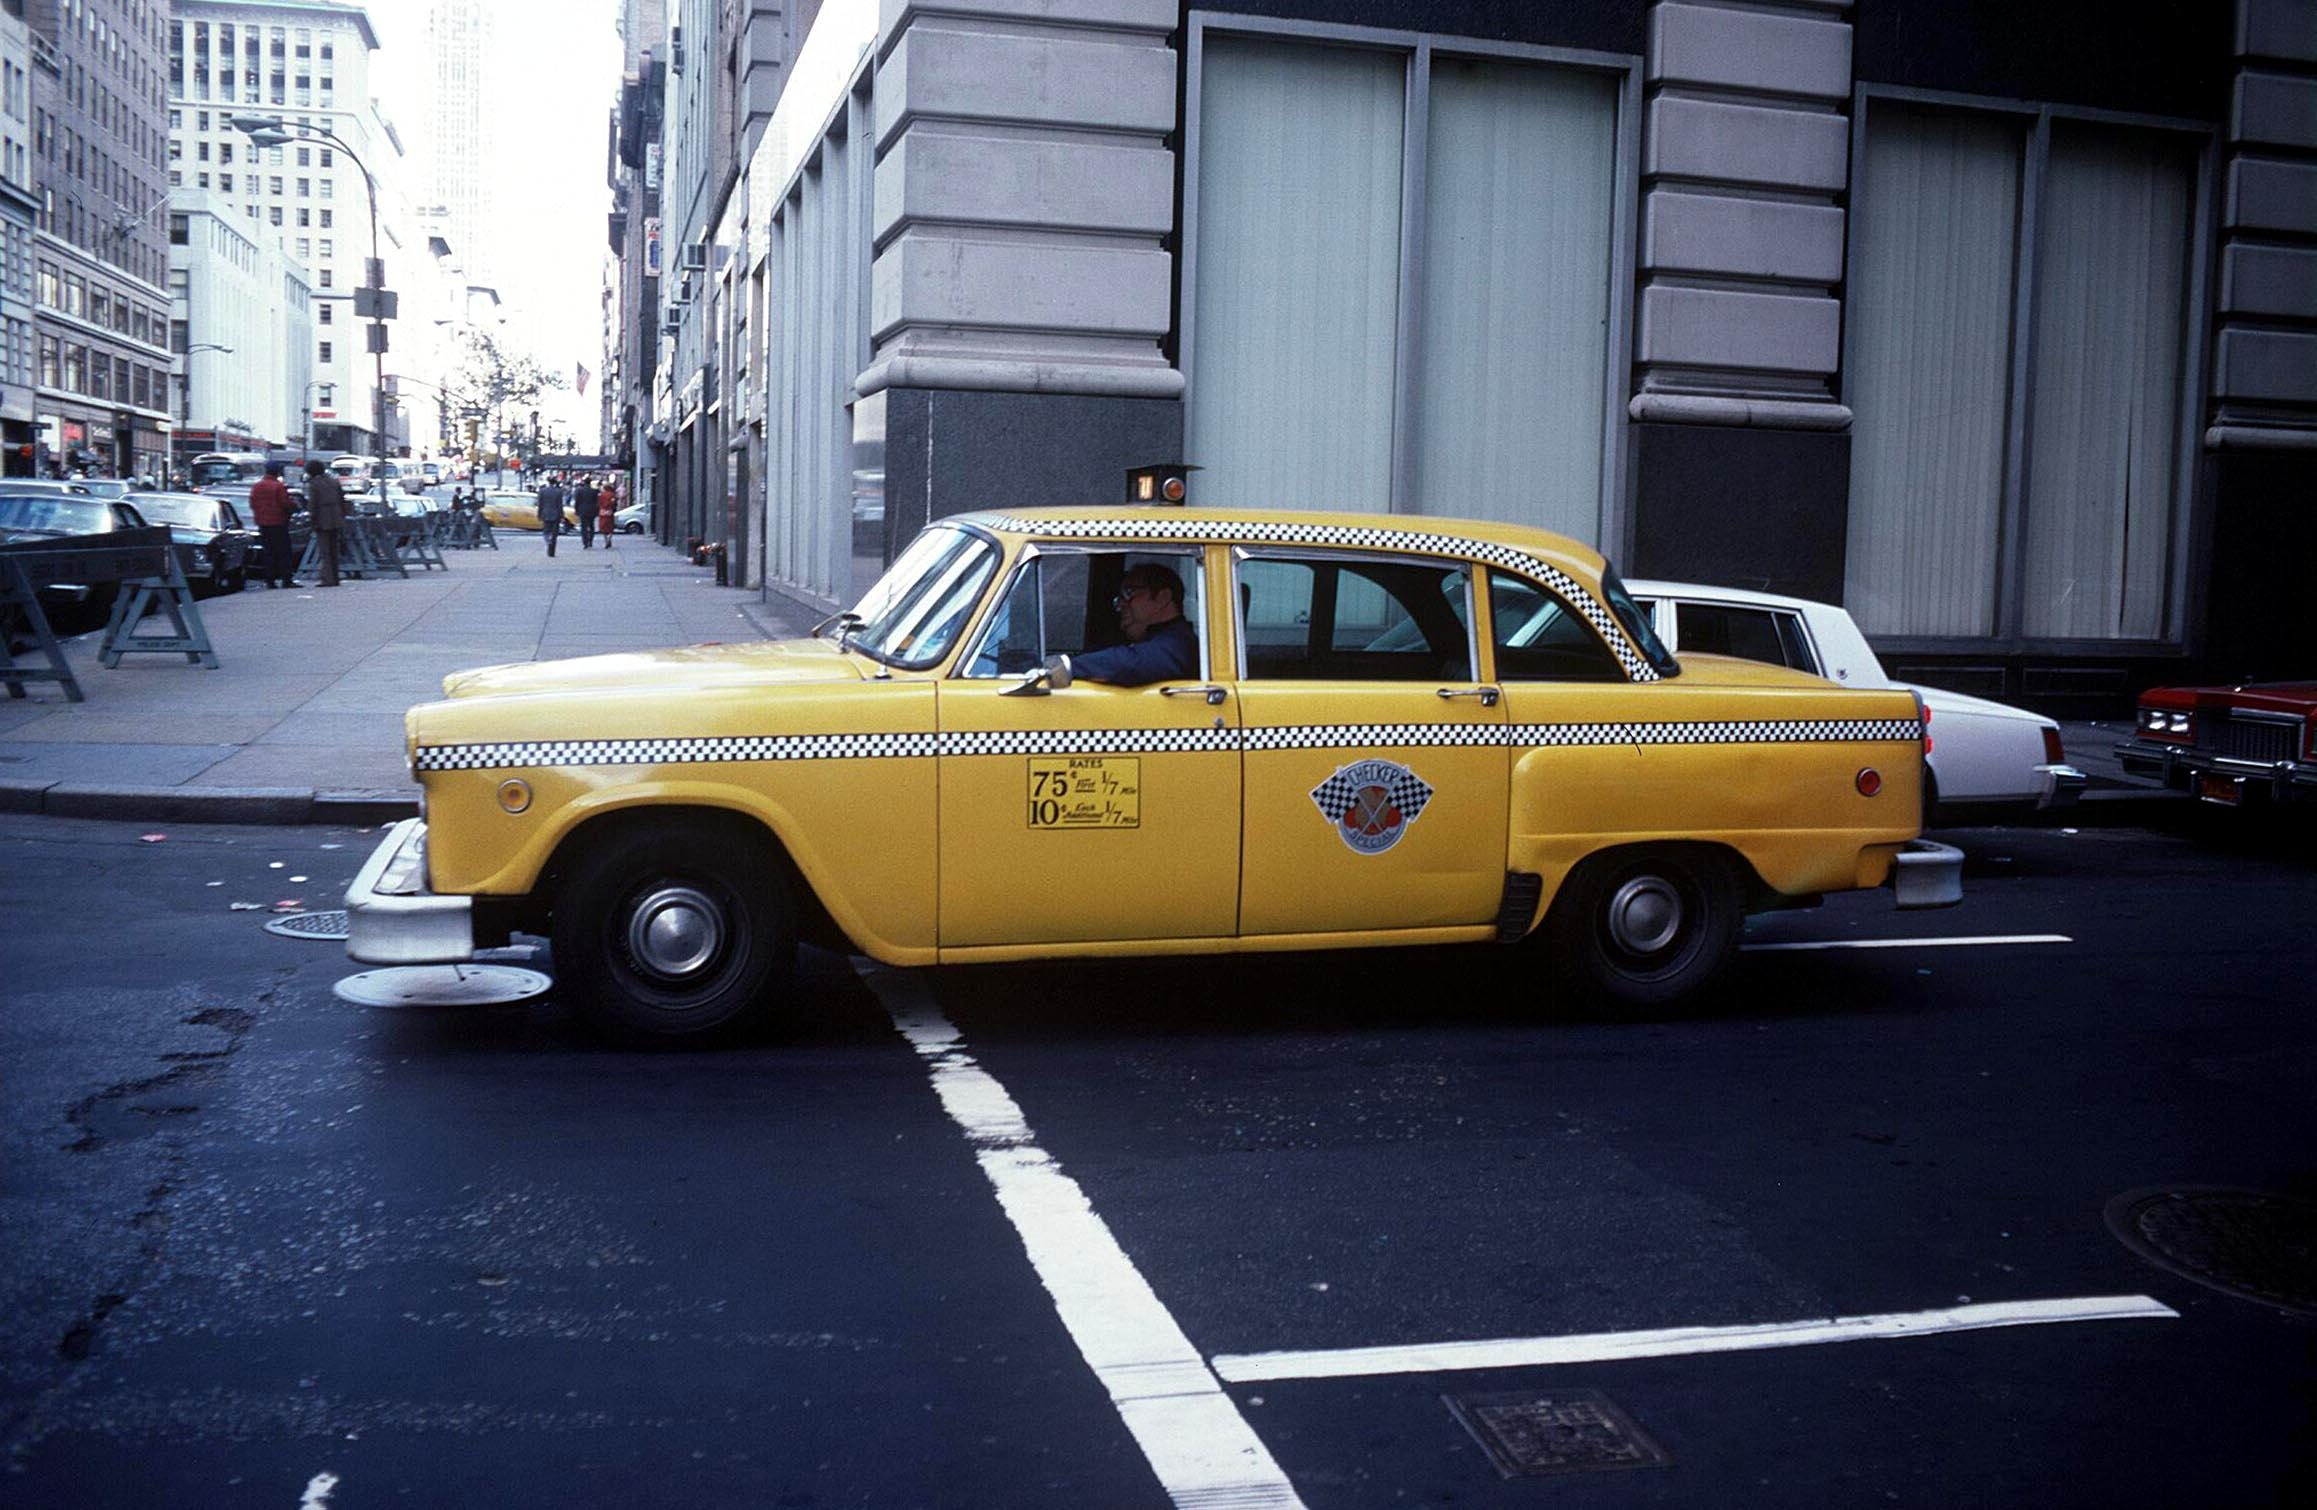 Mandatory Credit: Photo by Ray Roberts/Shutterstock (75614a) Yellow taxi cab, New York, America New York, America - 1979